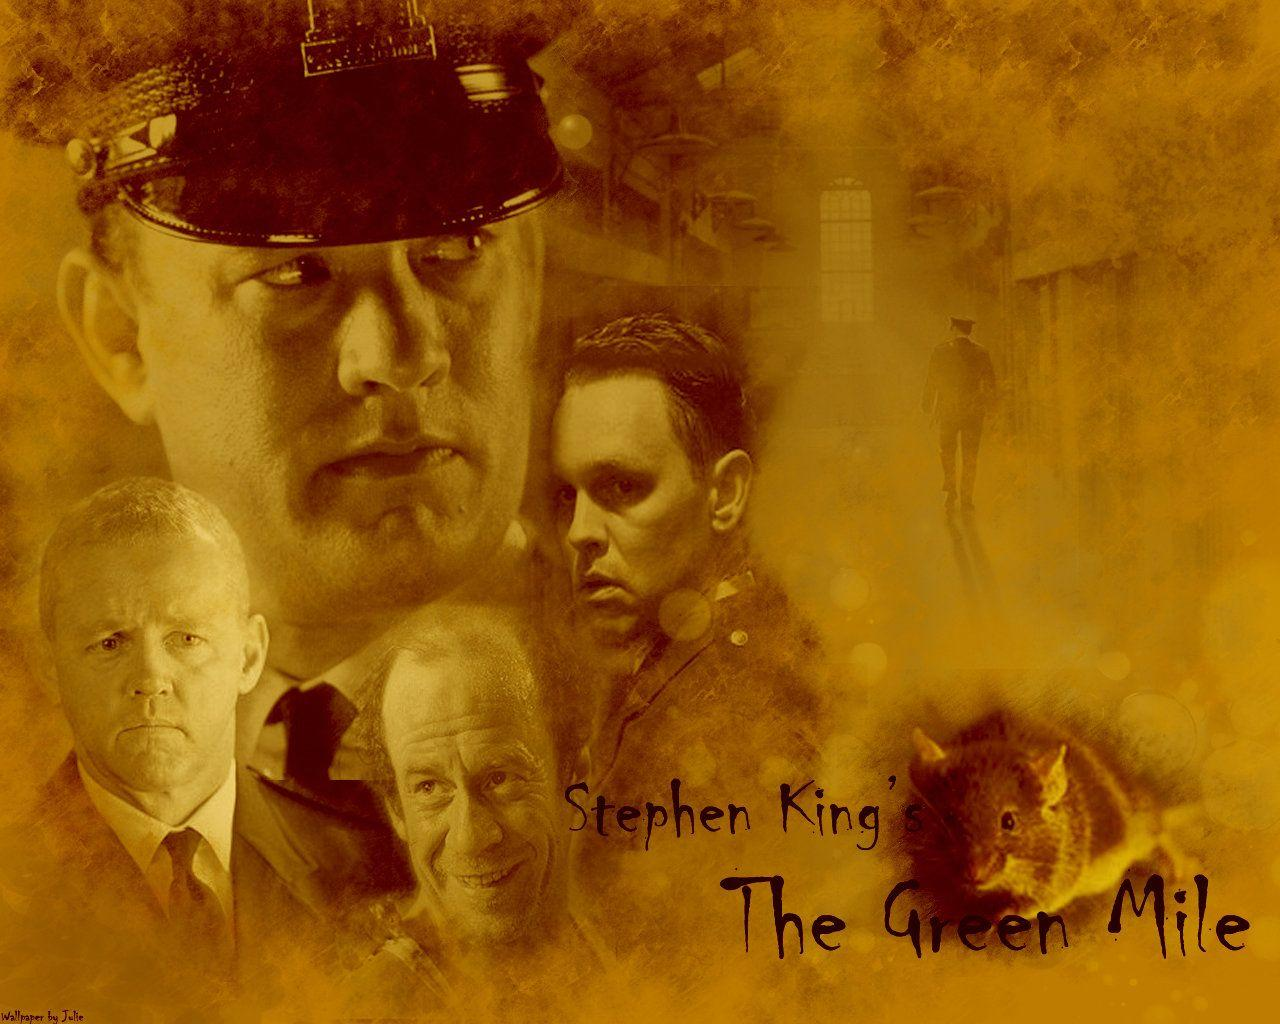 the green mile by Dr